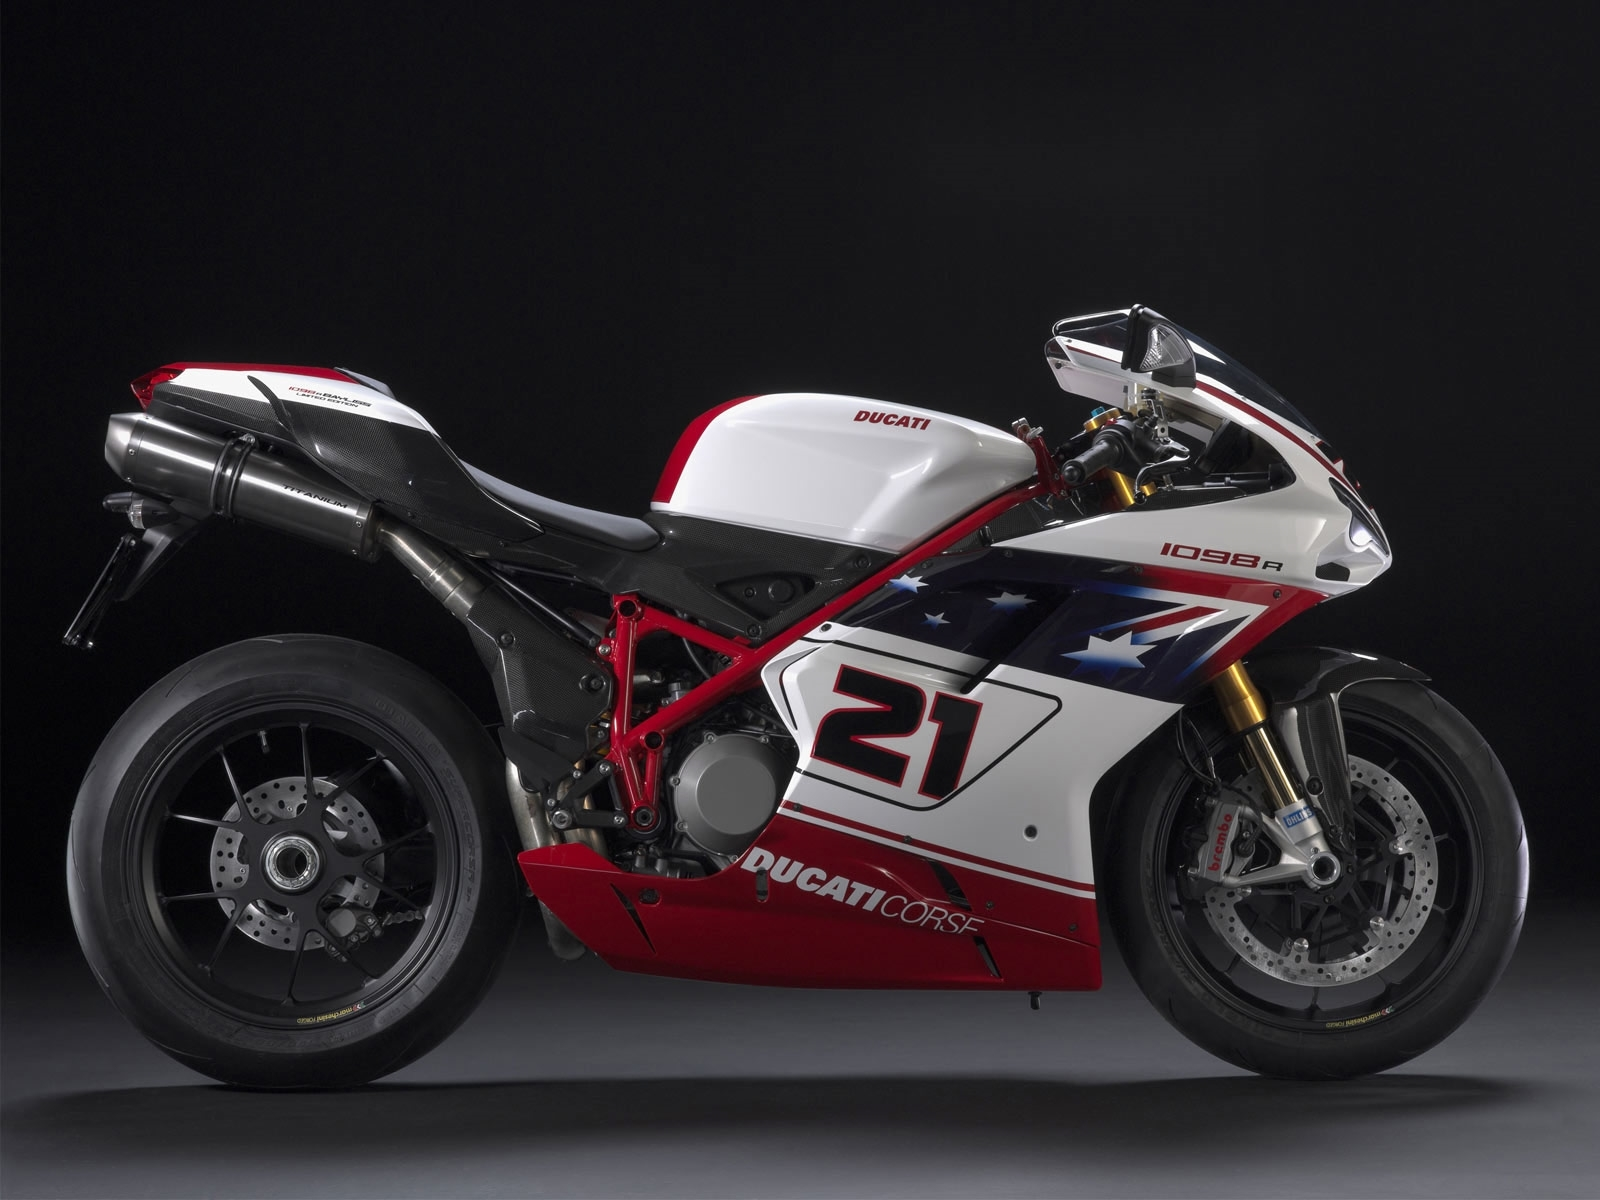 Superbike Hd Wallpaper Full Screen: Ducati Superbike Wallpapers For Android